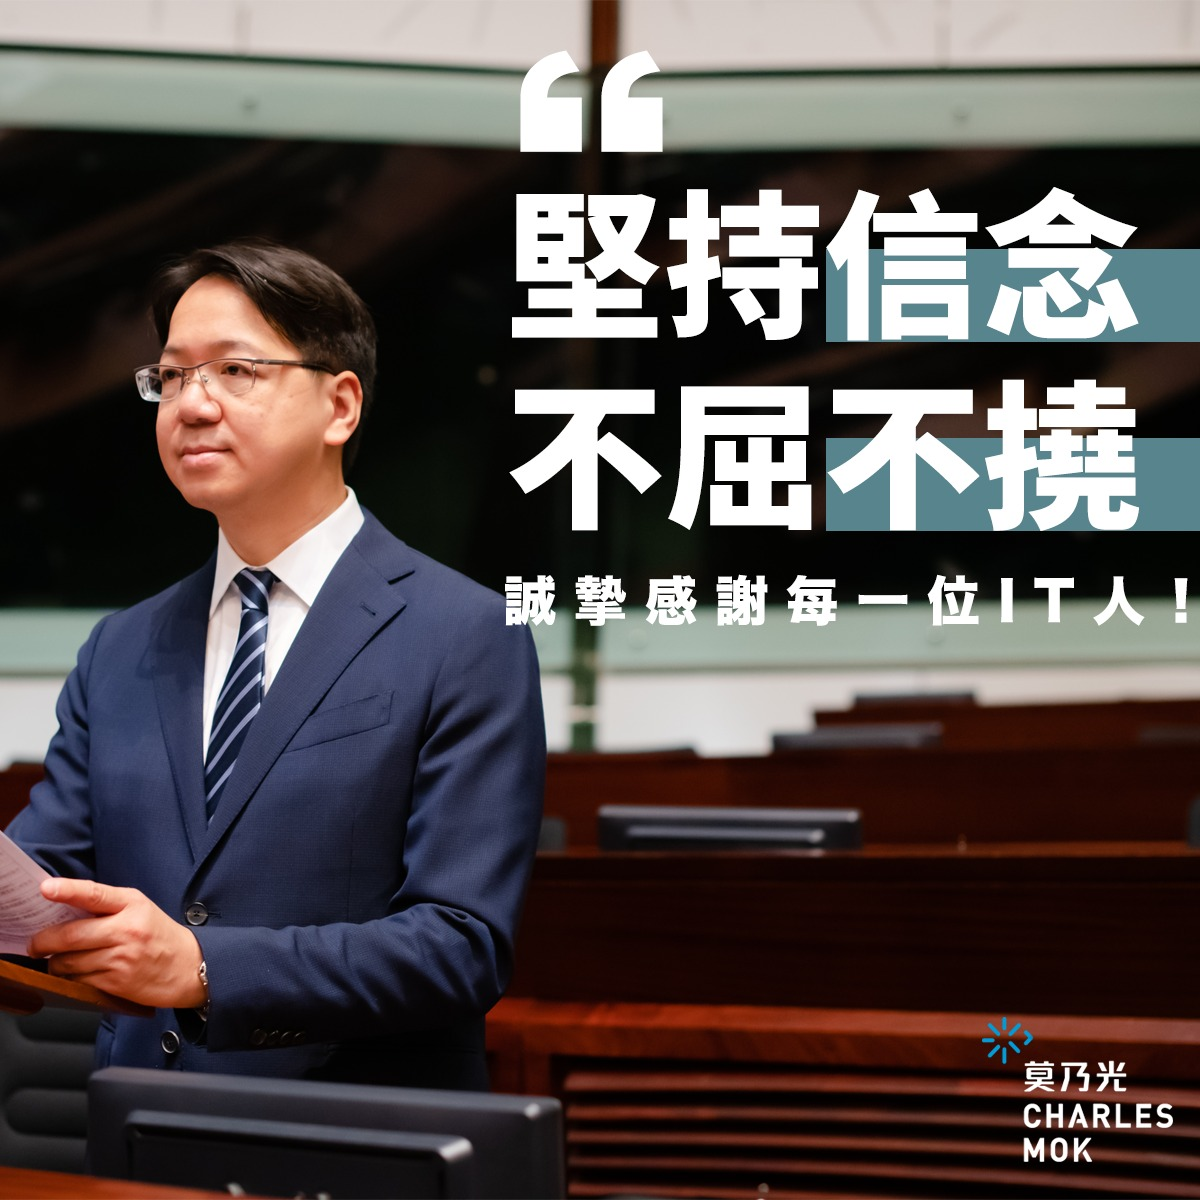 link to [Submission] Charles Mok responds to the EAC's consultation: Stop political screening and eliminate Confirmation Form